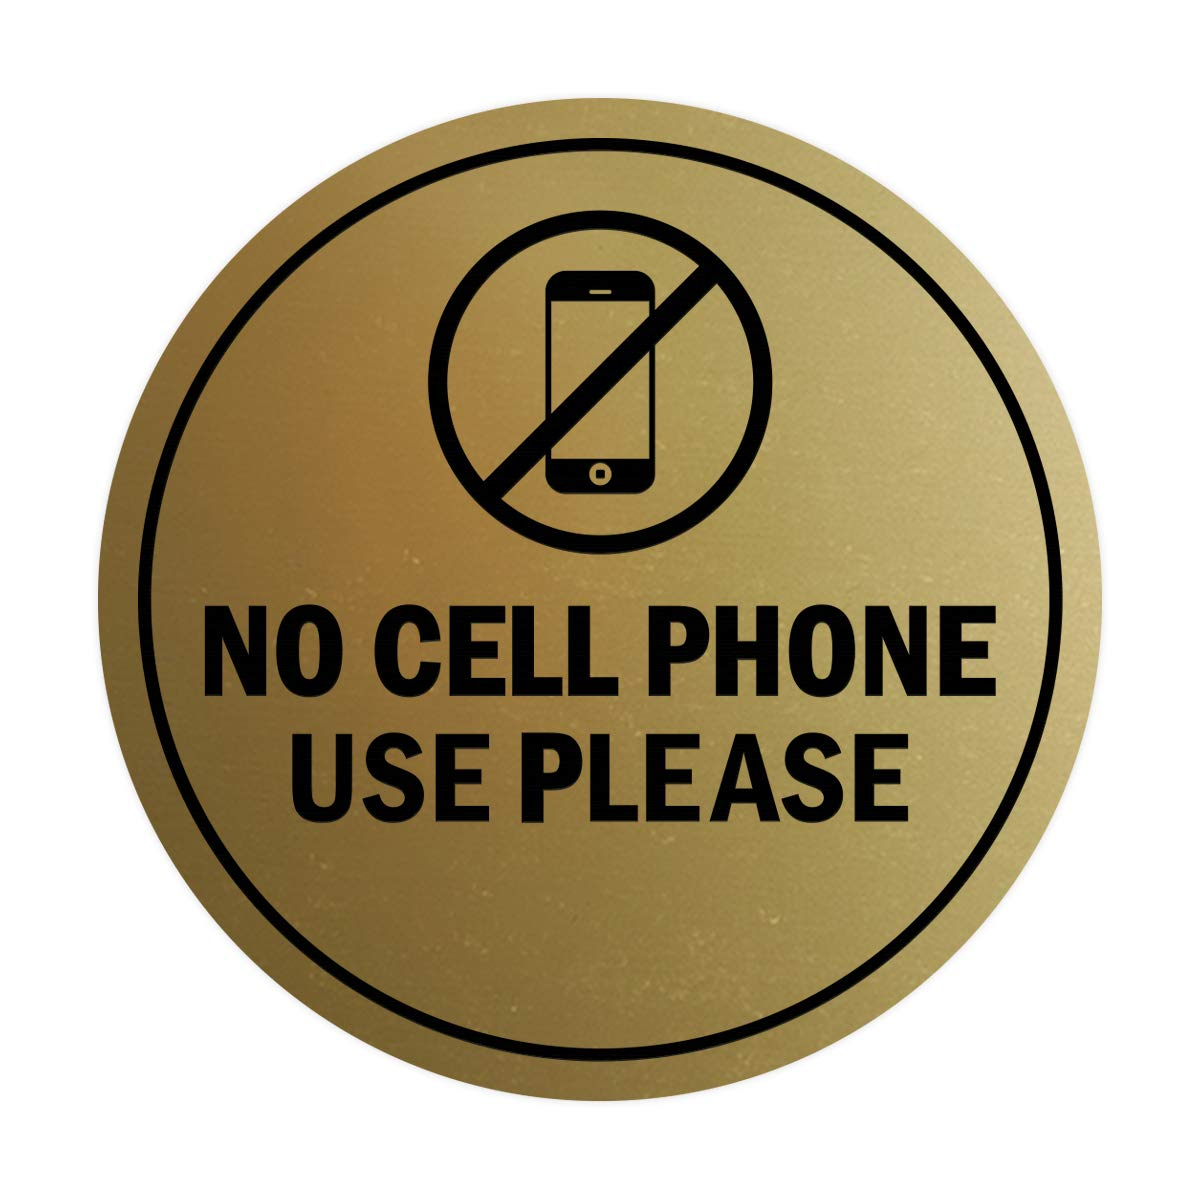 Navy Blue//White Signs ByLITA Circle No Cell Phone Use Please Sign Large